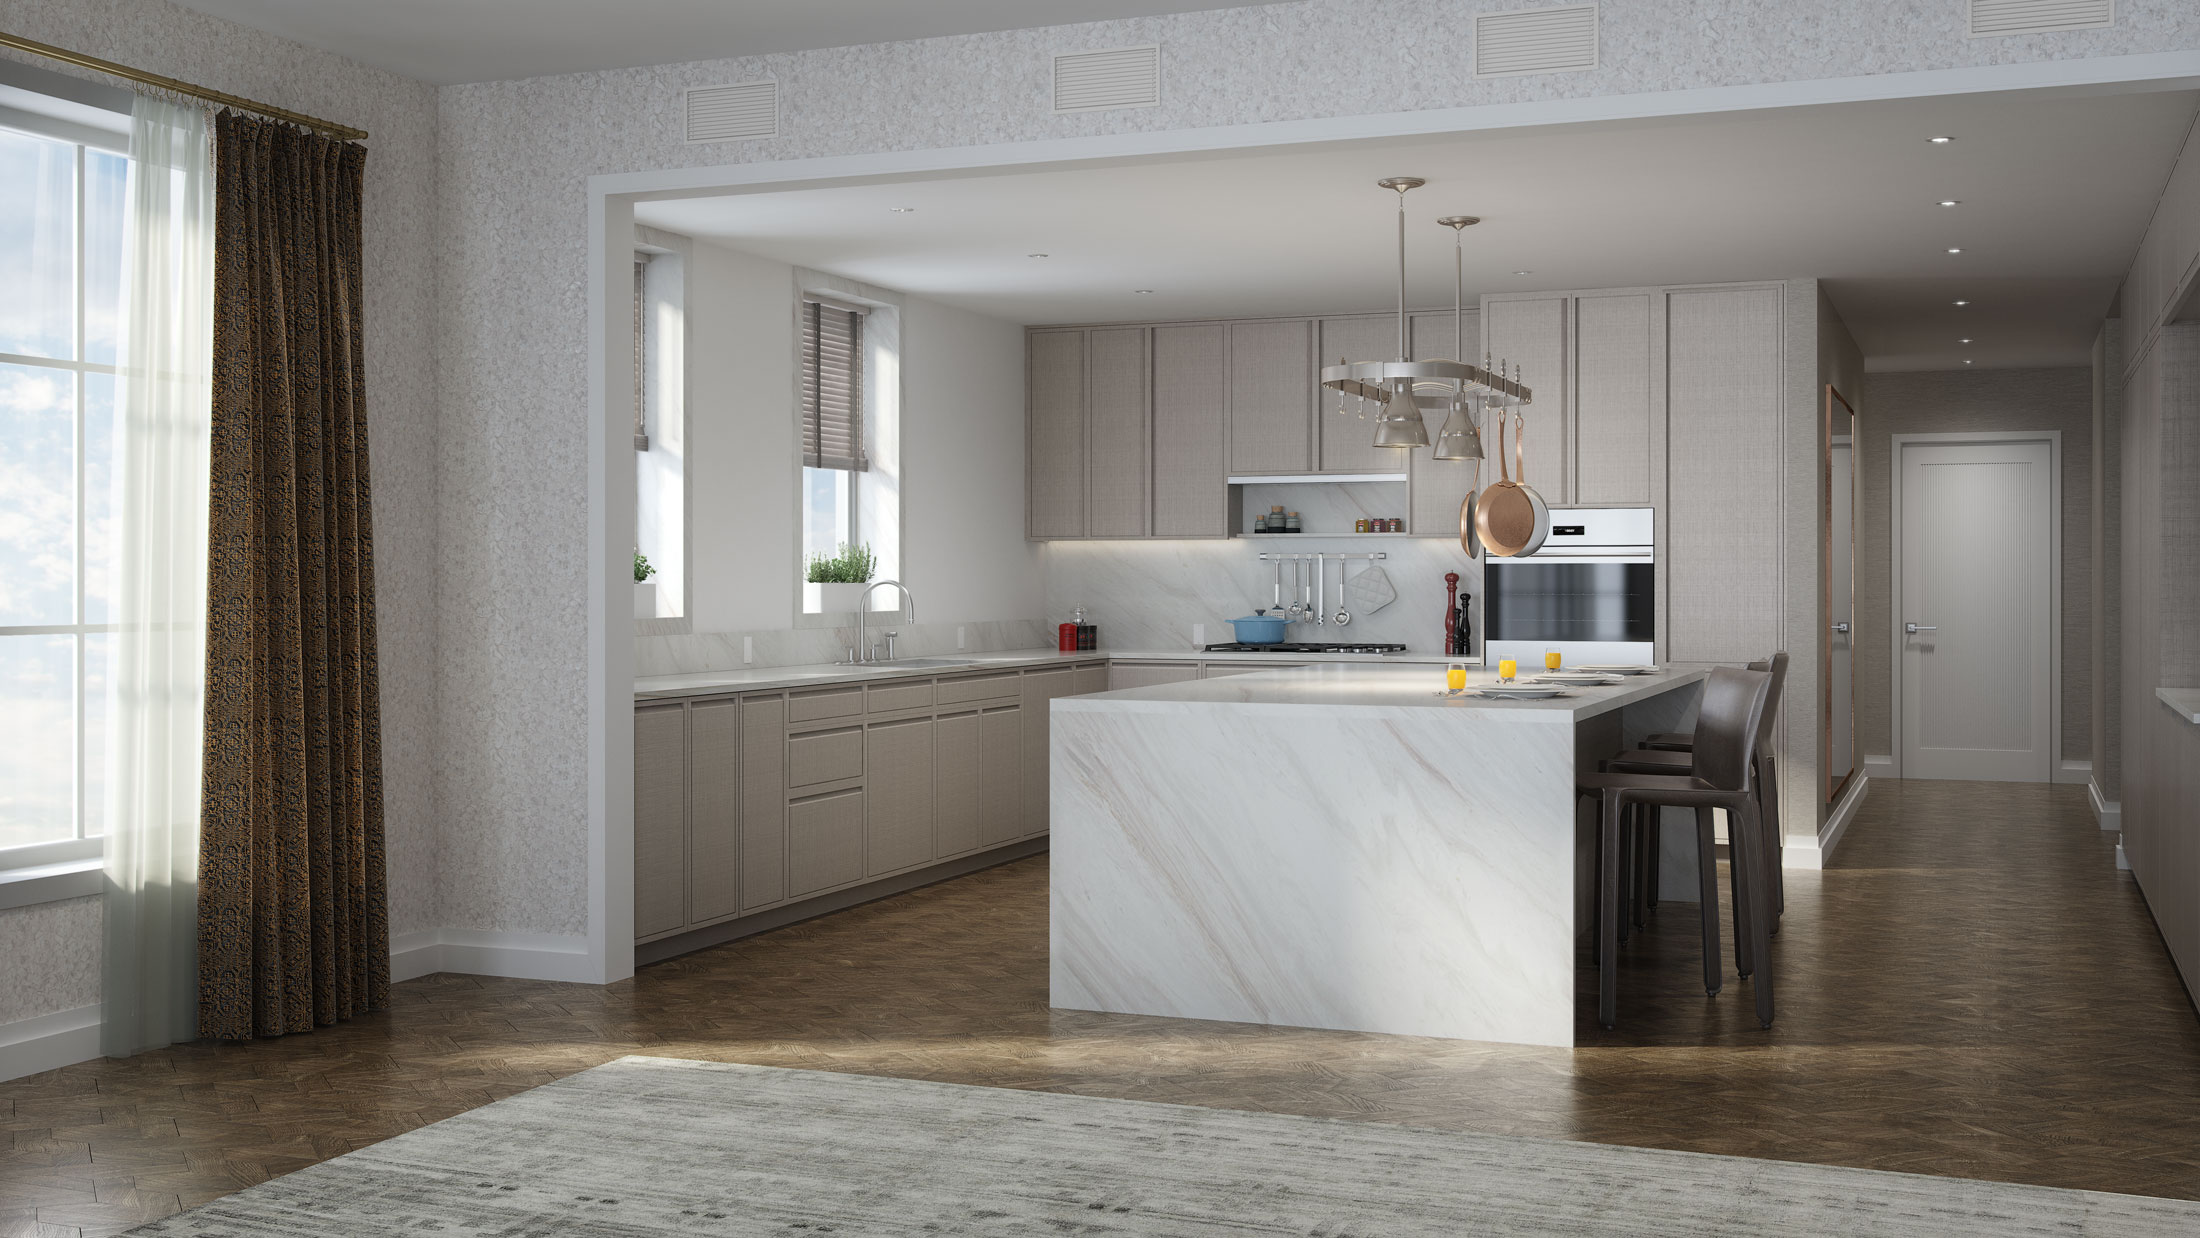 Architectural Rendering of the kitchen of the 207 West 79th Street project located on the Upper West Side, New York City